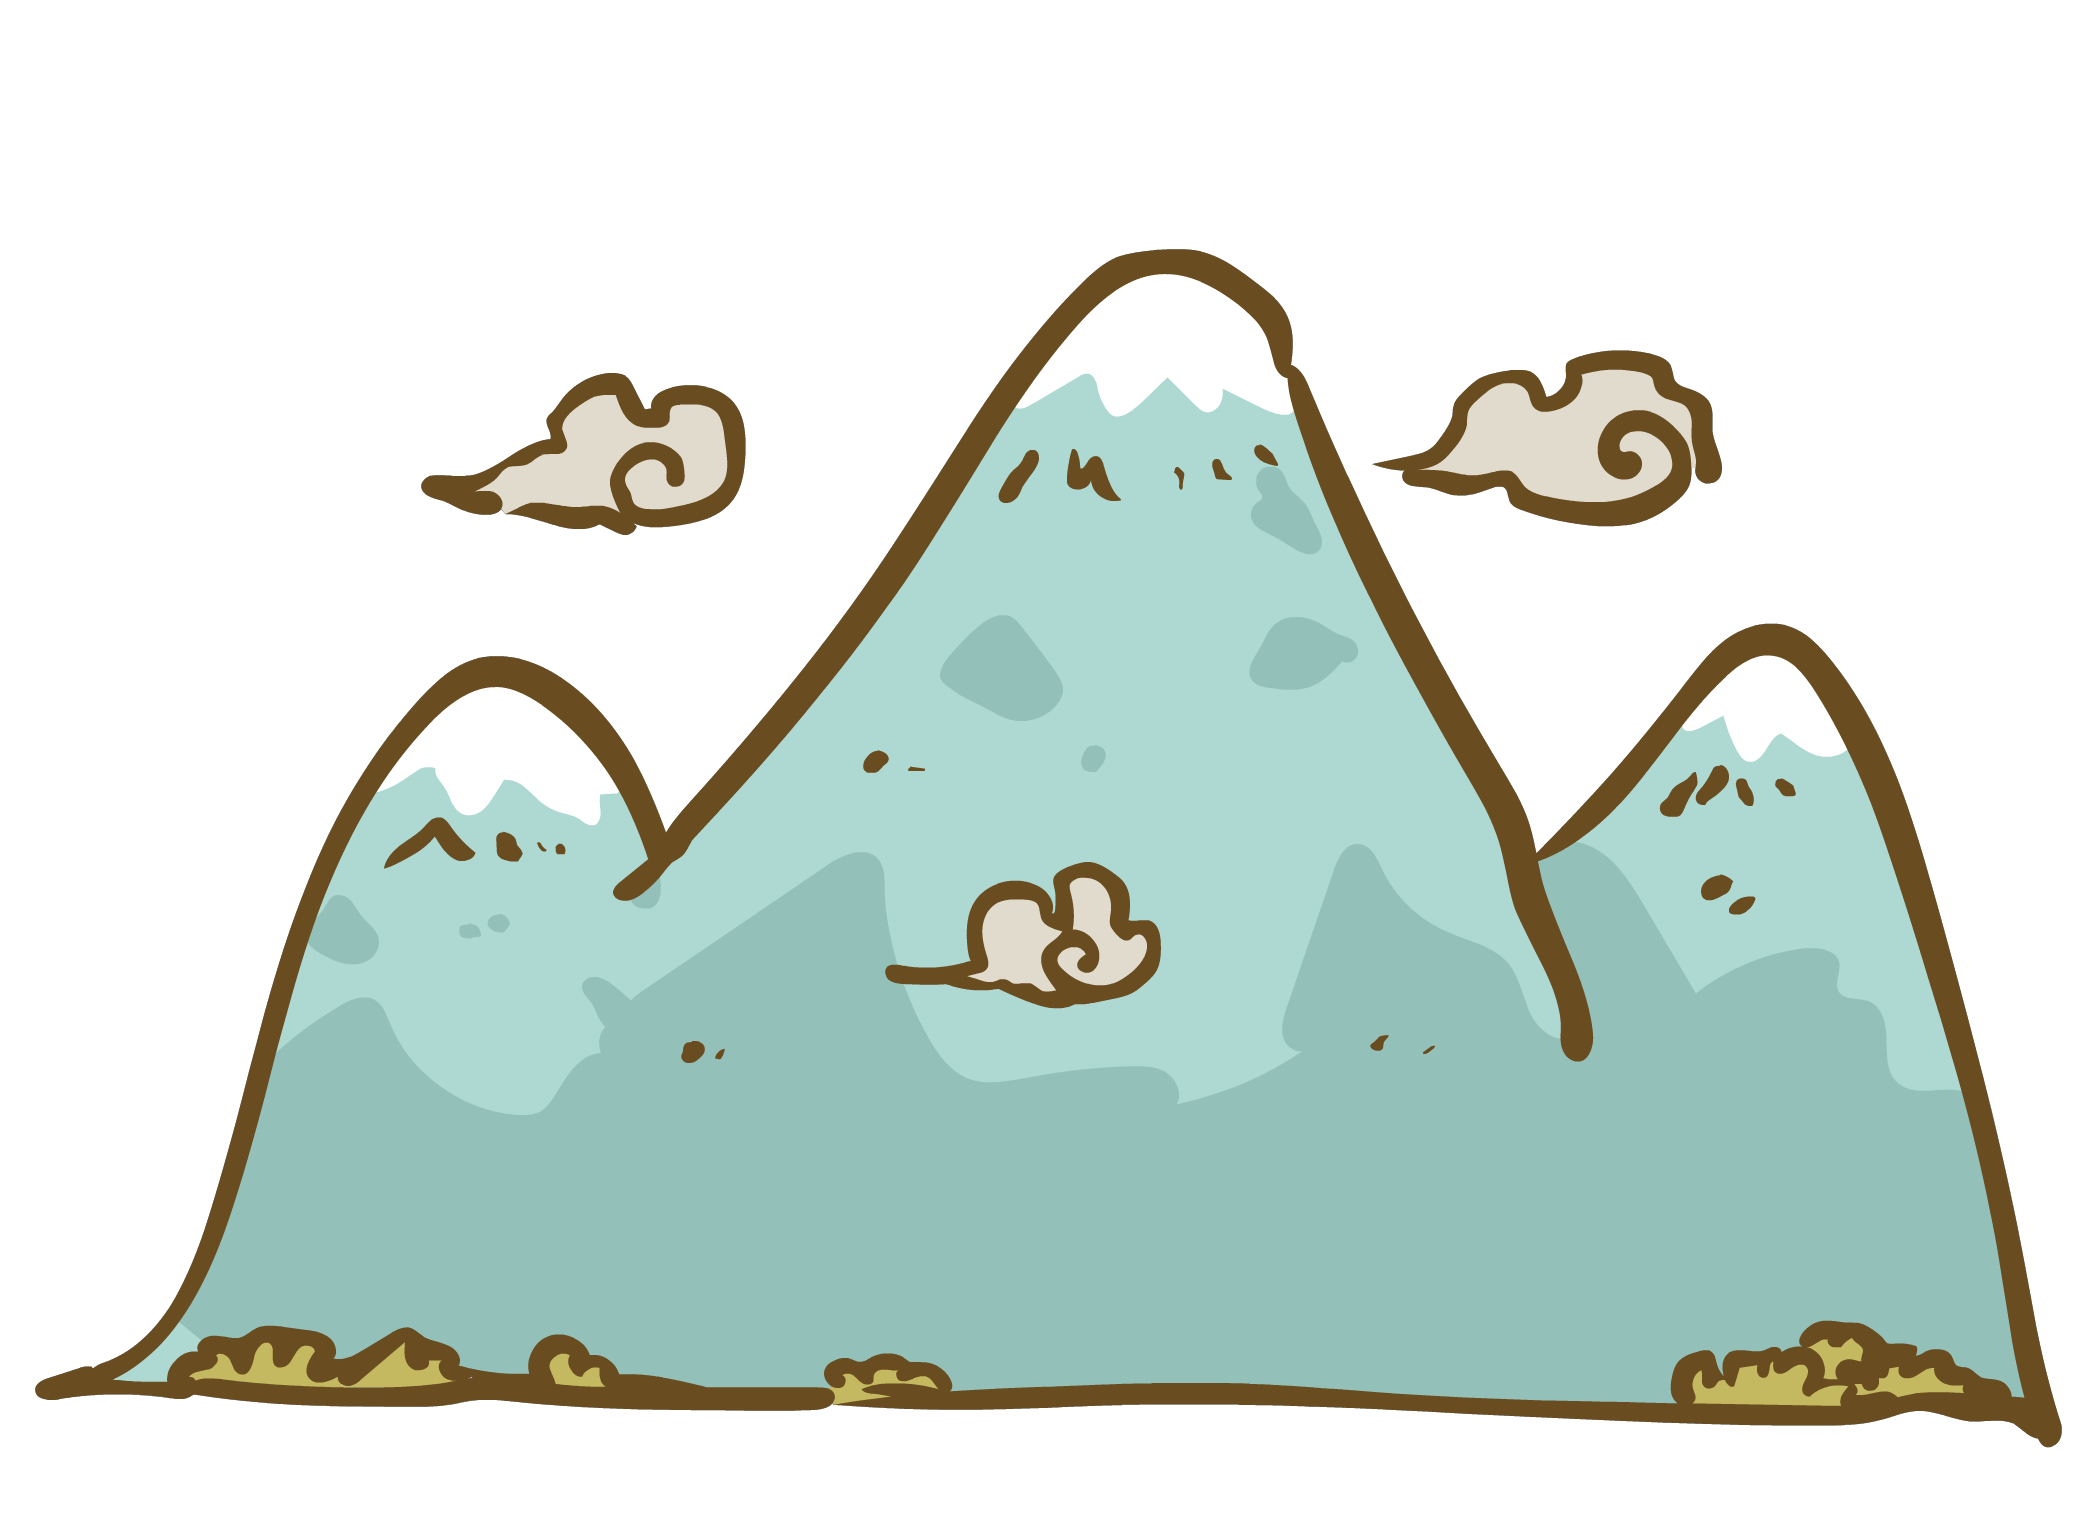 Hills clipart two mountain. Learning japanese kanji with